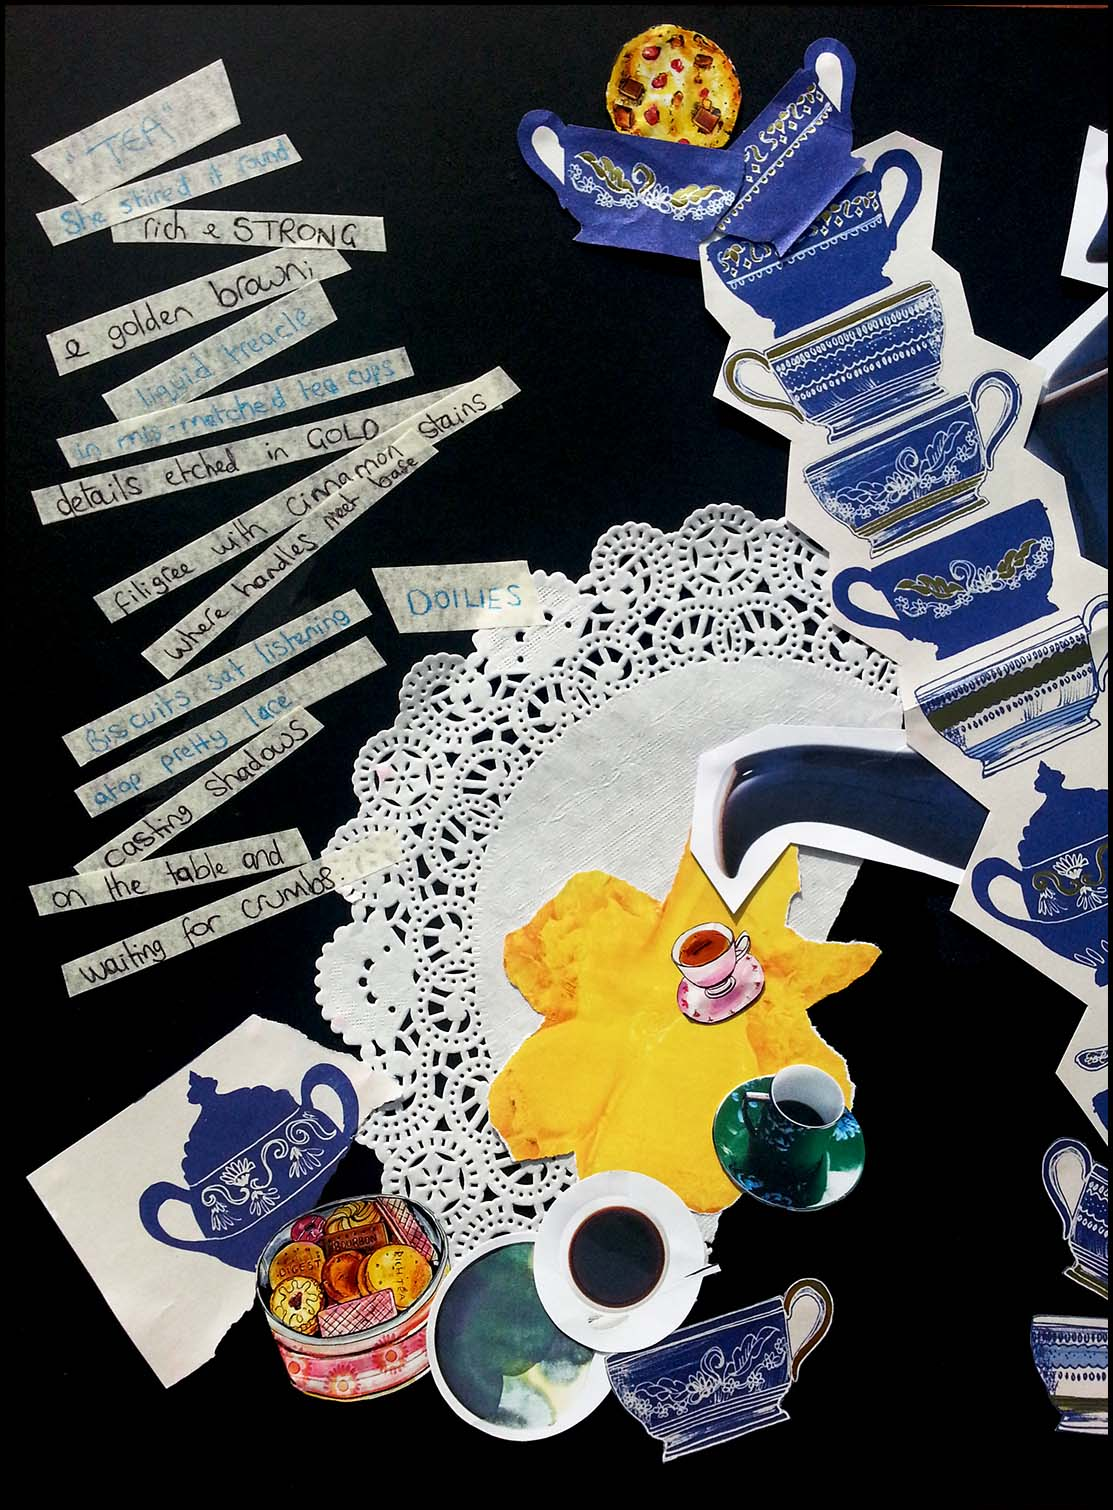 'Time for Tea' poem & collage